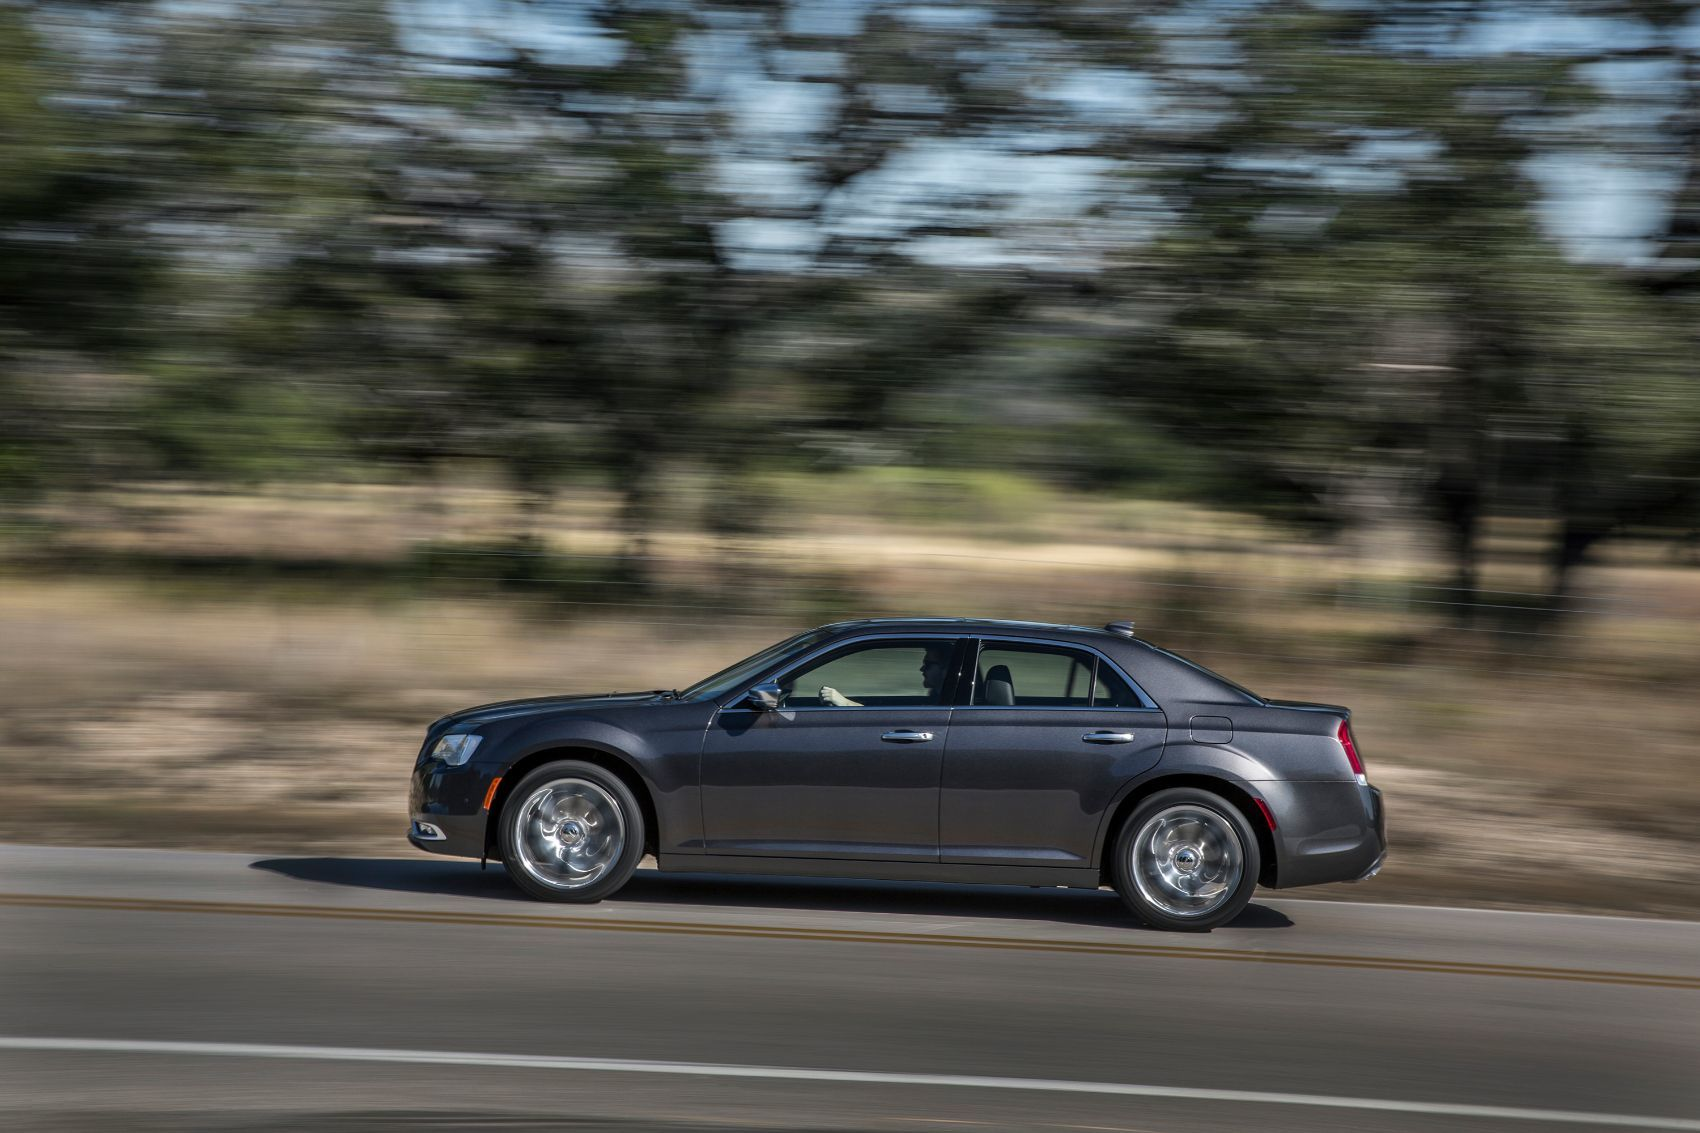 2019 Chrysler 300 Review: An Affordable Executive-Level Car